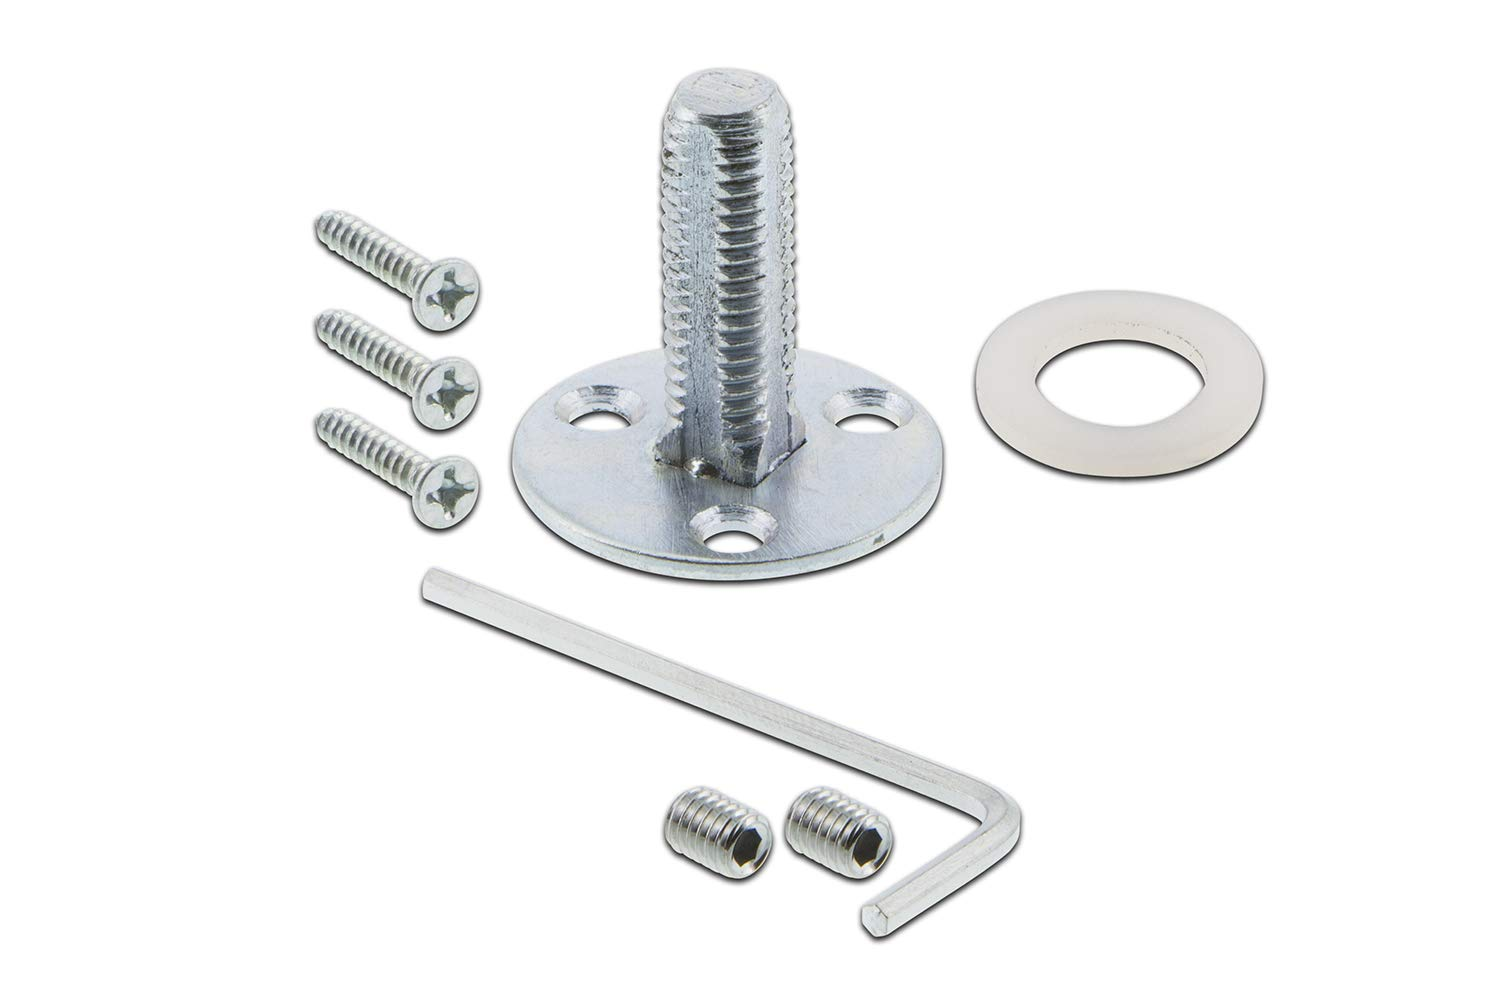 1//2-13 x 8-1//2 Piece-22 Hard-to-Find Fastener 014973231996 Carriage Bolts